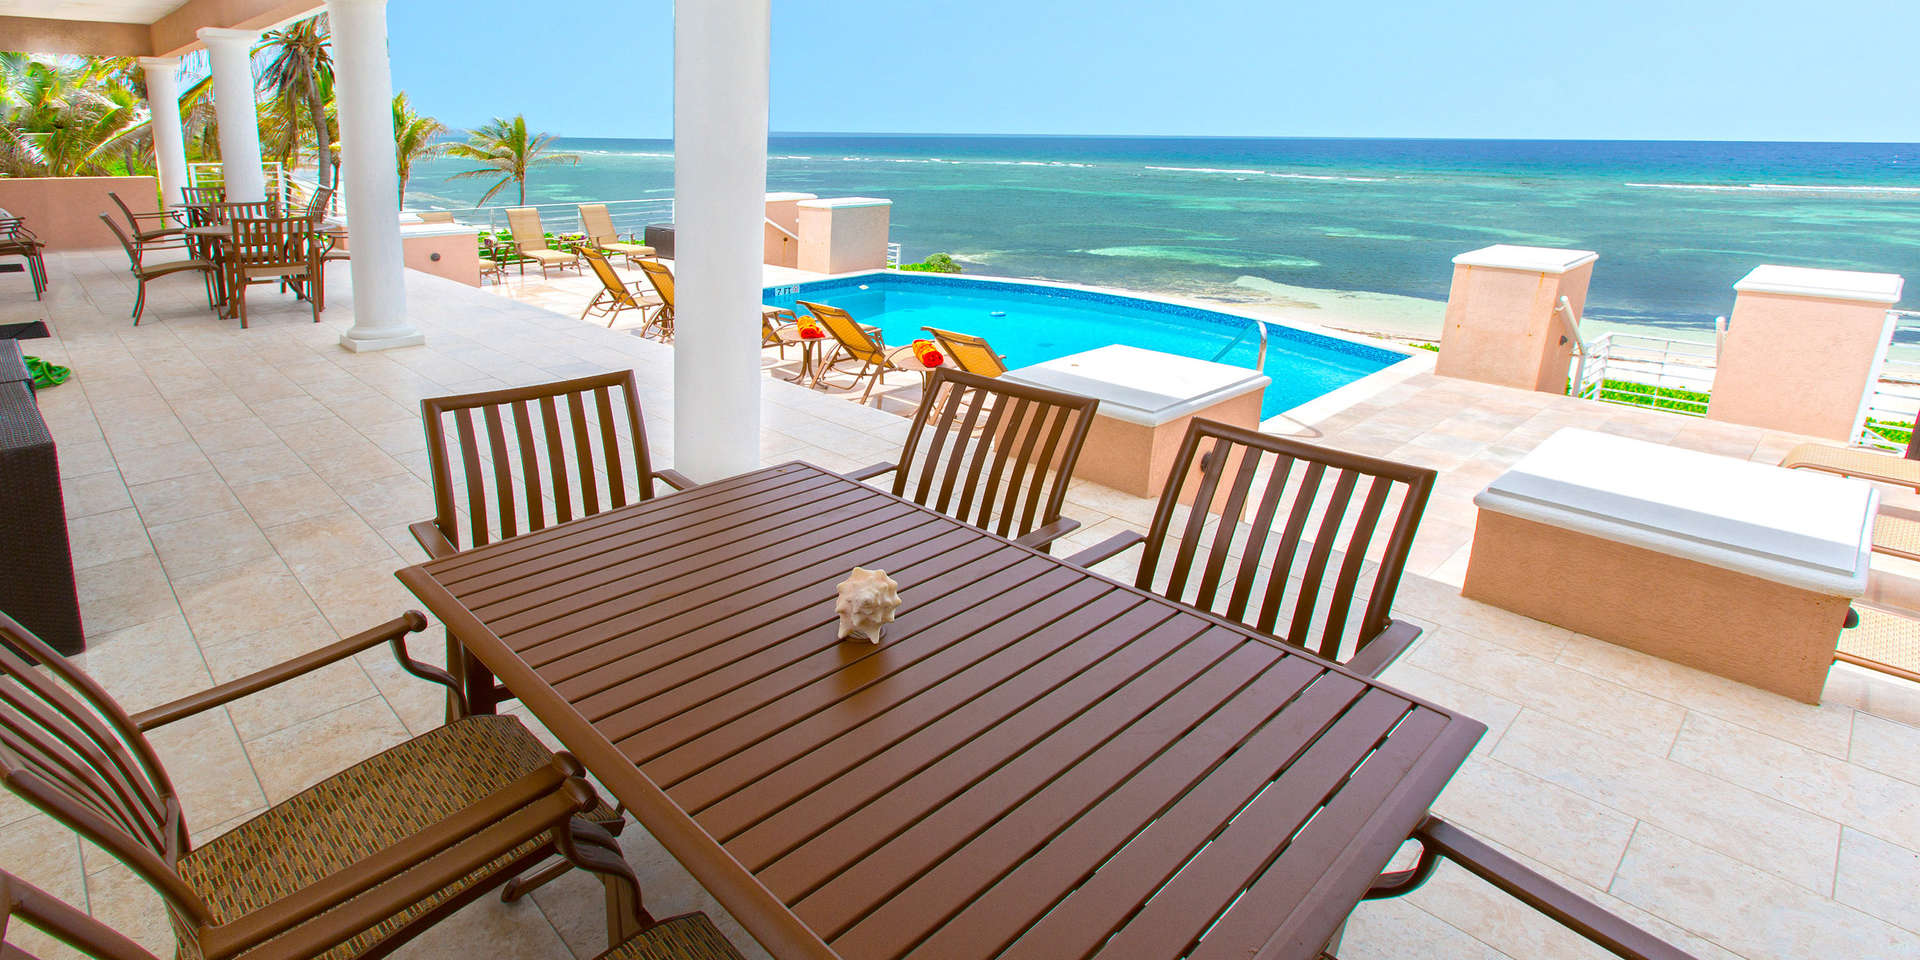 Luxury villa rentals caribbean - Cayman islands - Grand cayman - Rum point - Coral Kai - Image 1/17